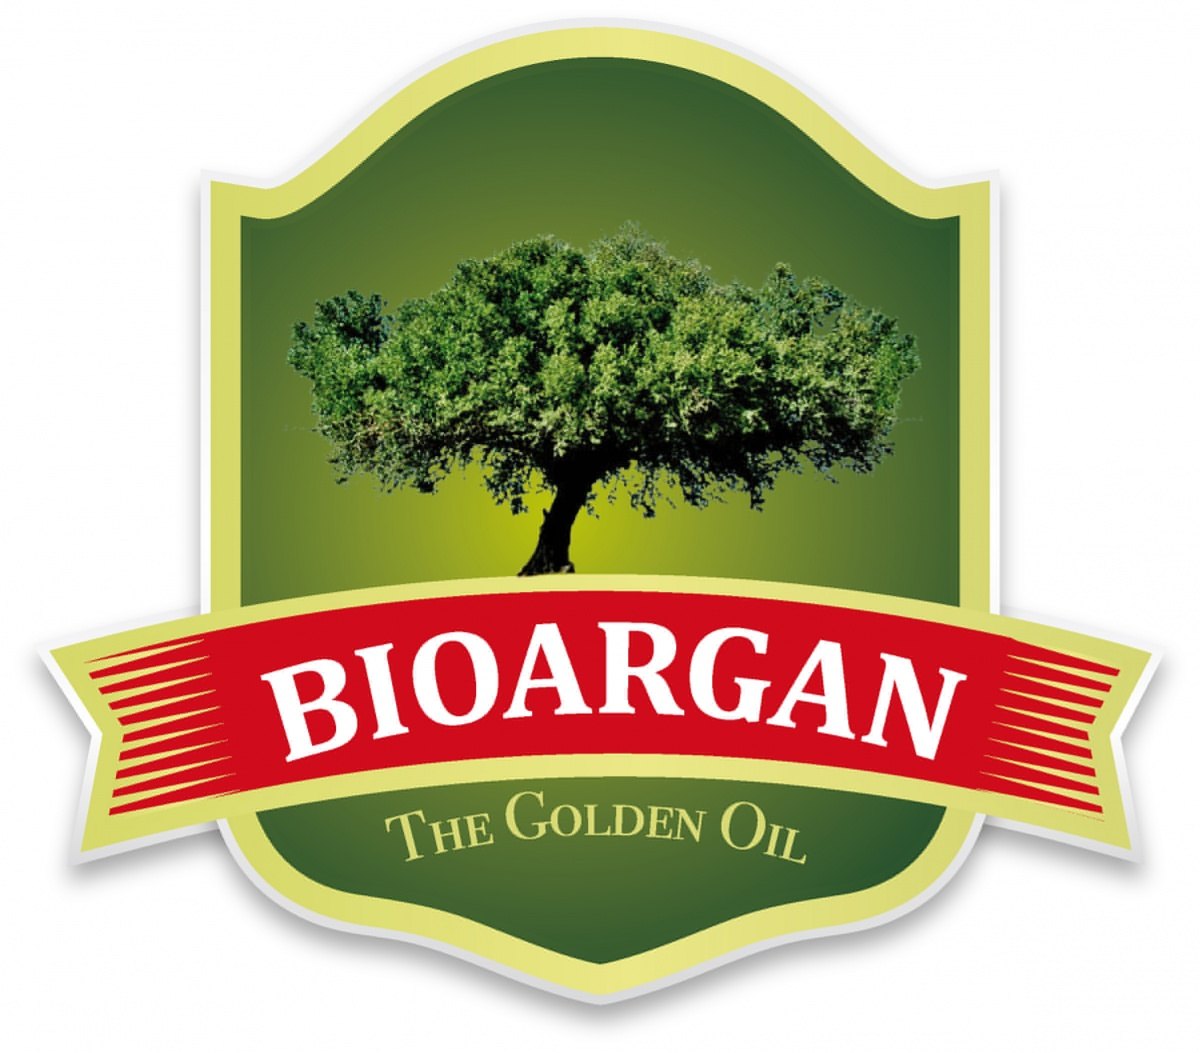 Logo_bioargan_Golden_oil.jpg